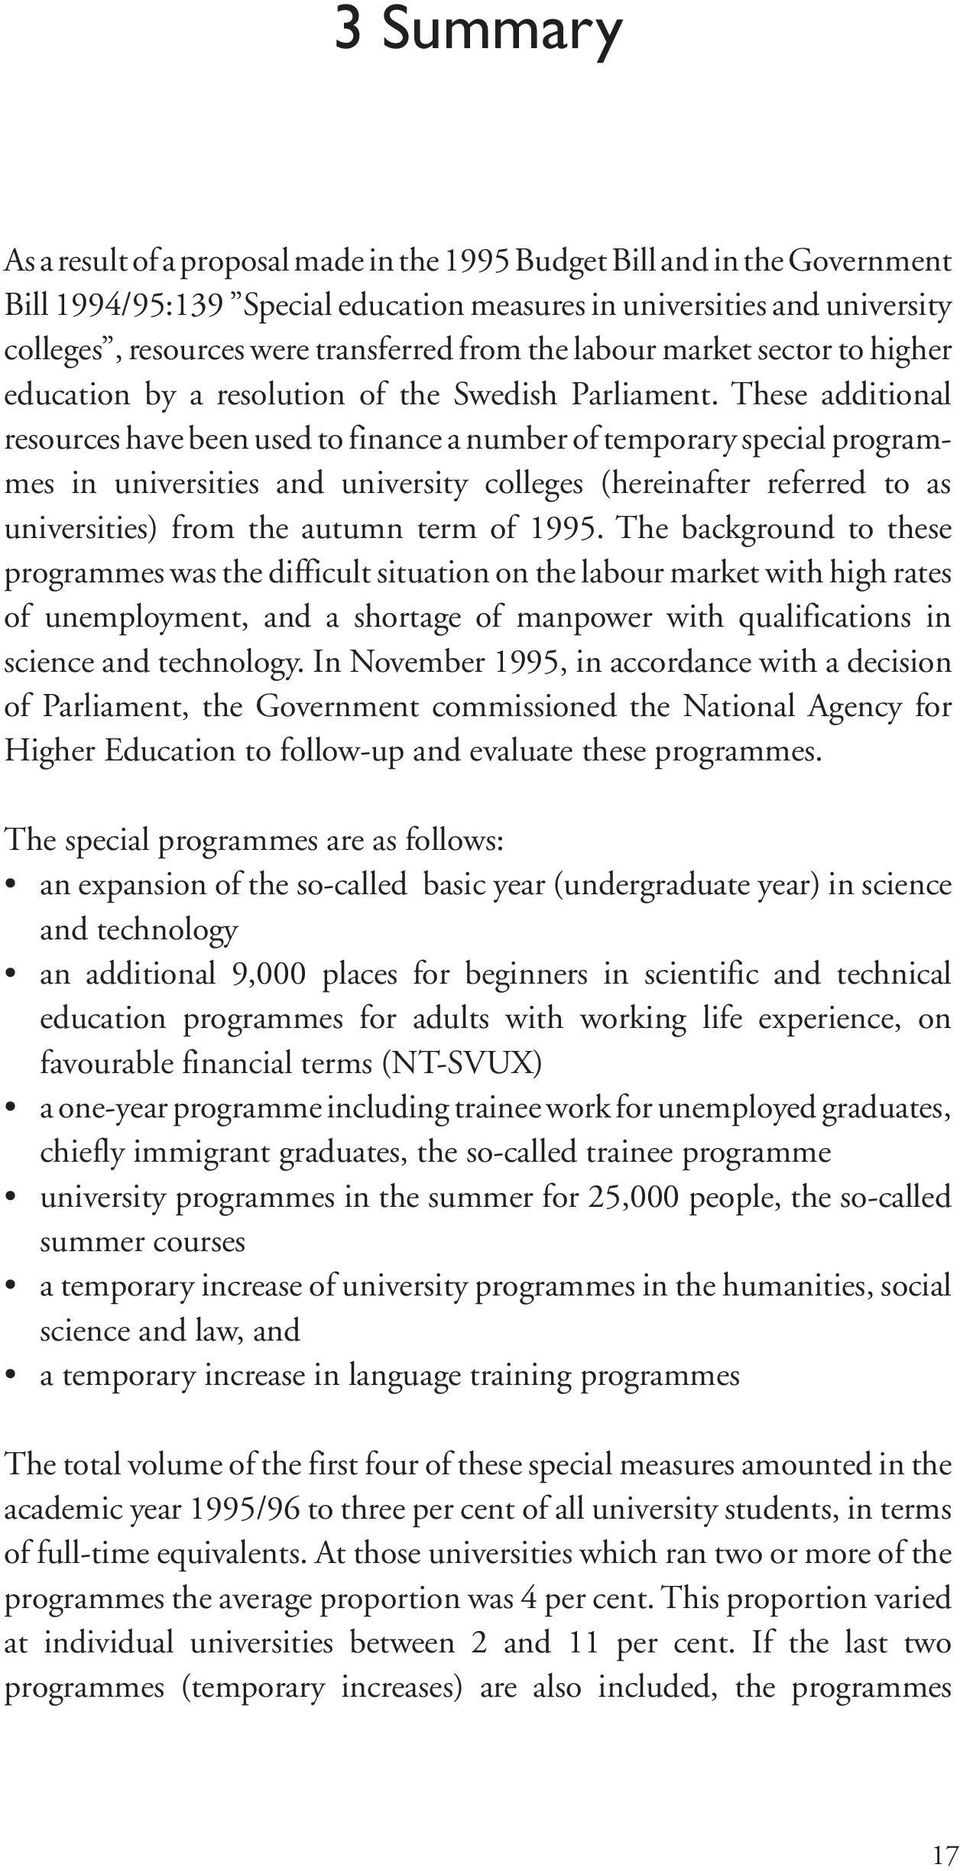 These additional resources have been used to finance a number of temporary special programmes in universities and university colleges (hereinafter referred to as universities) from the autumn term of